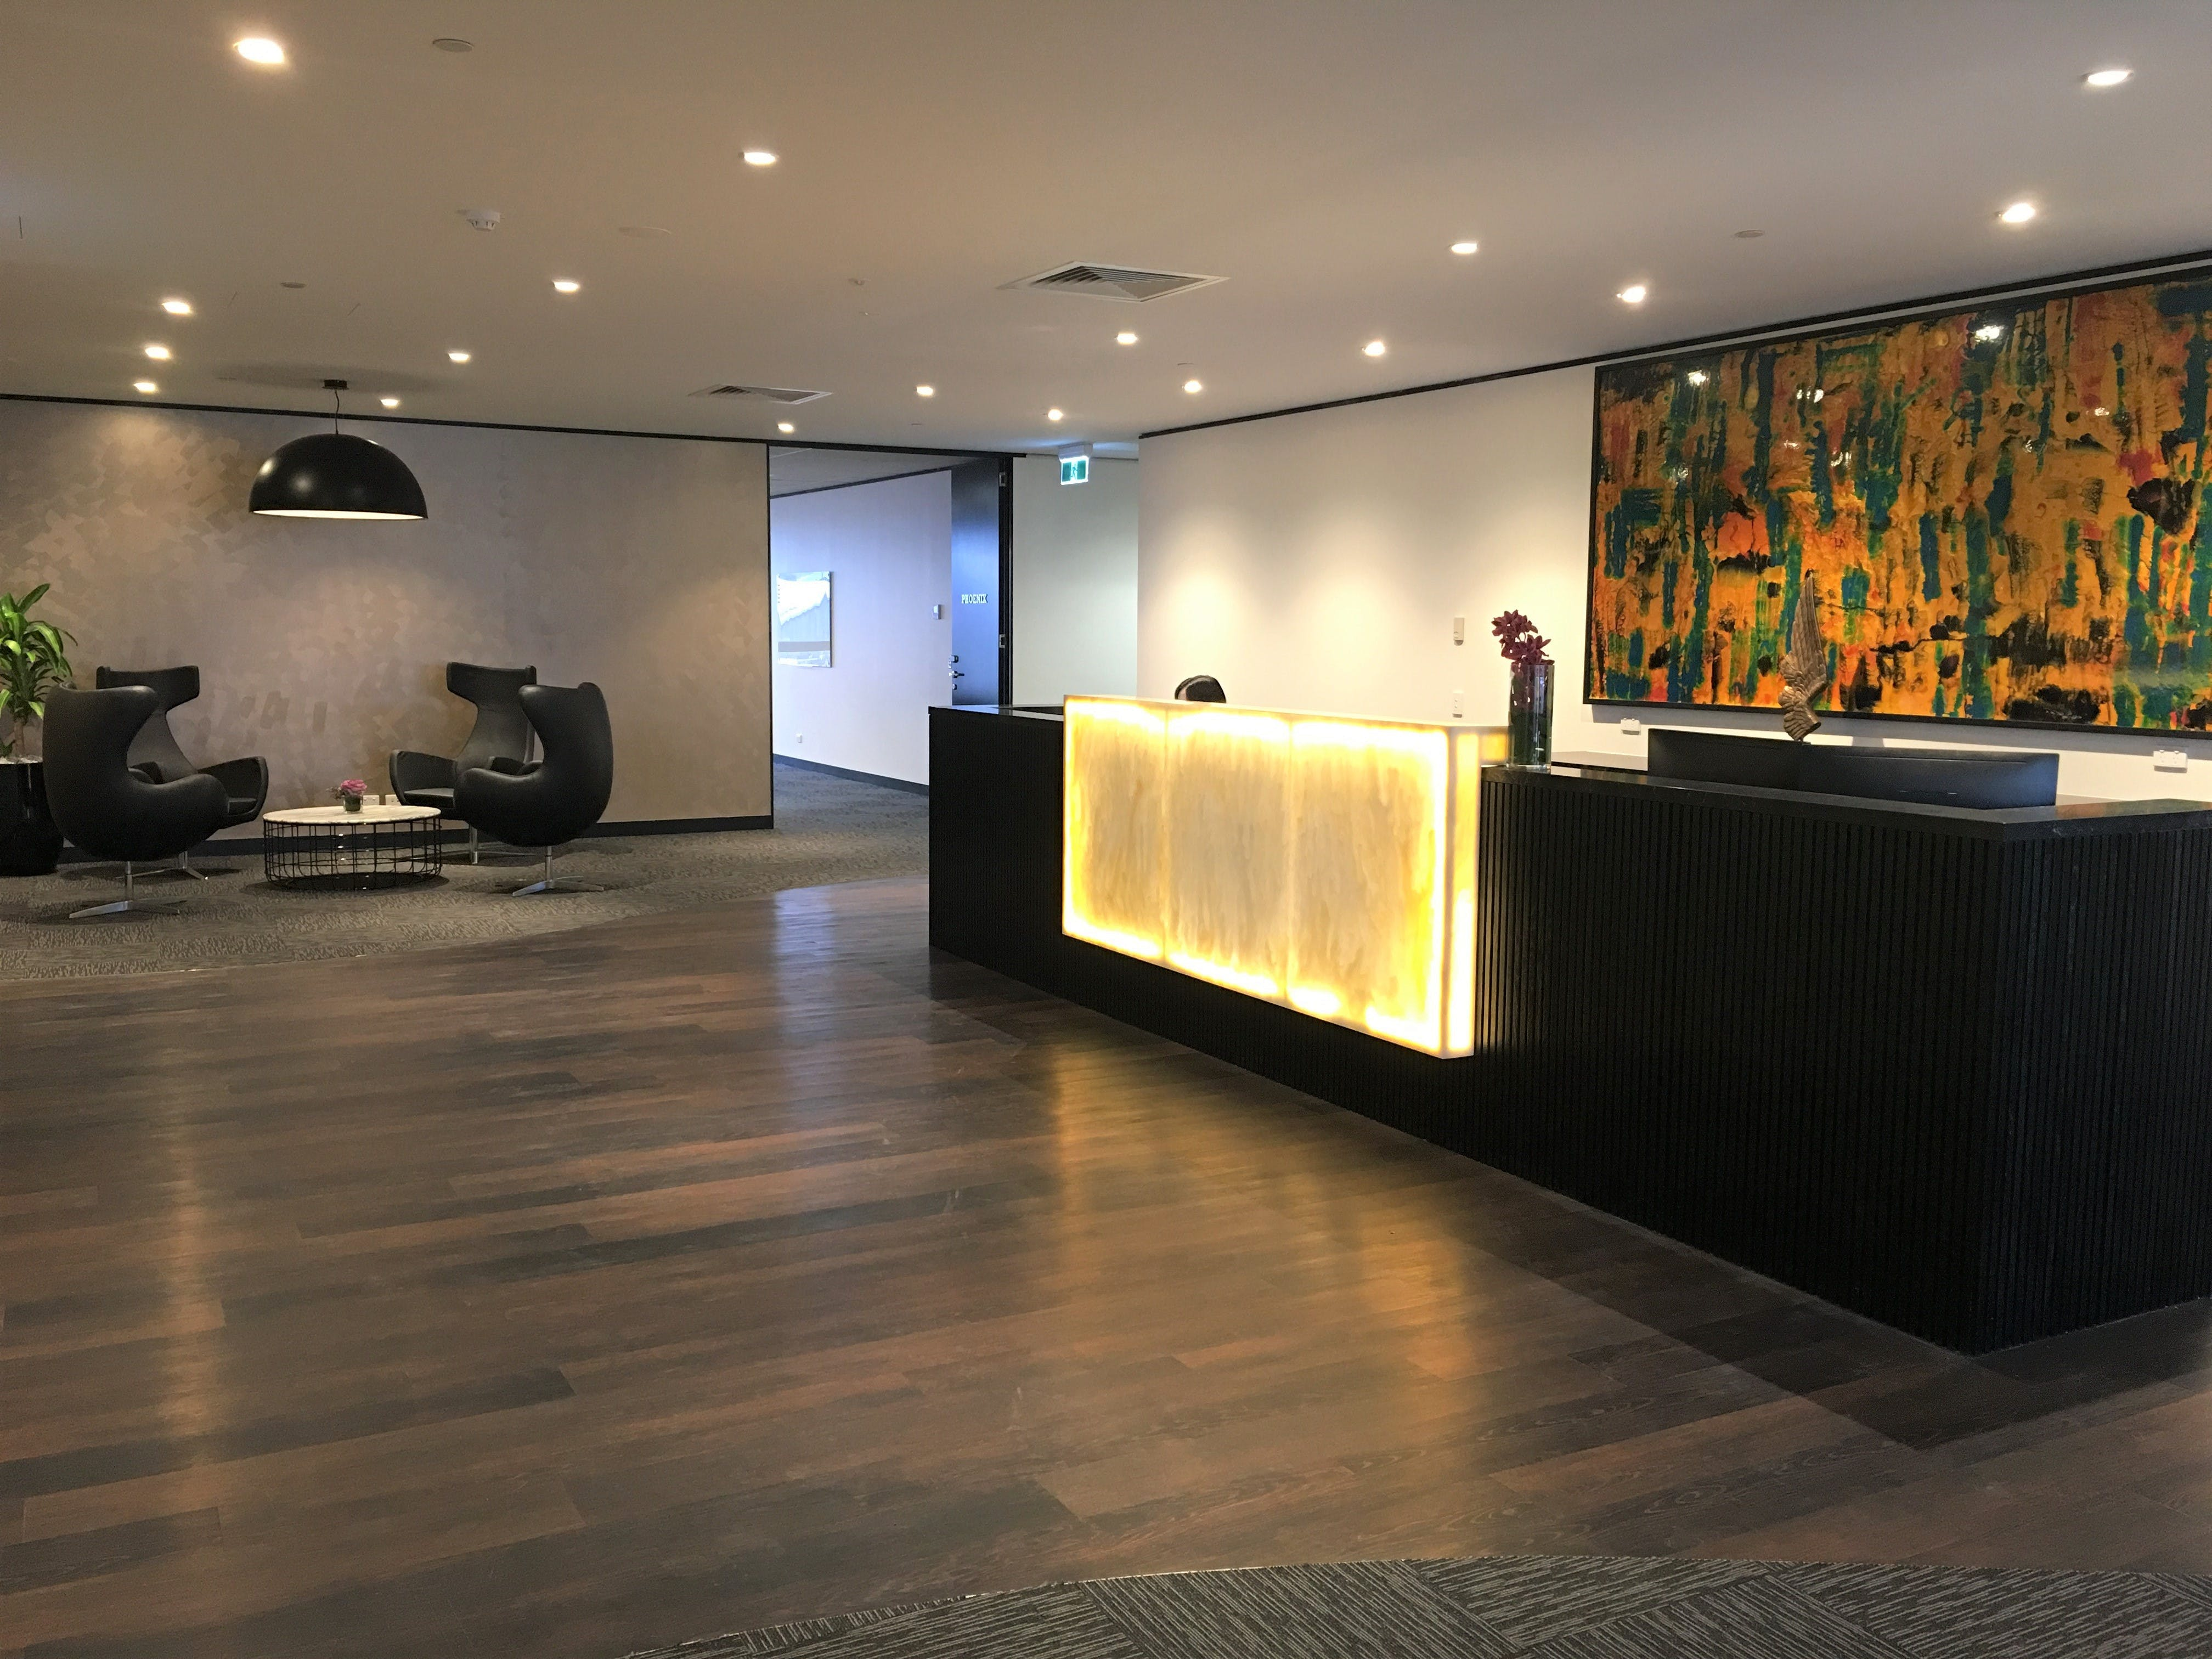 Office 2, serviced office at Victory Offices | Box Hill, image 1